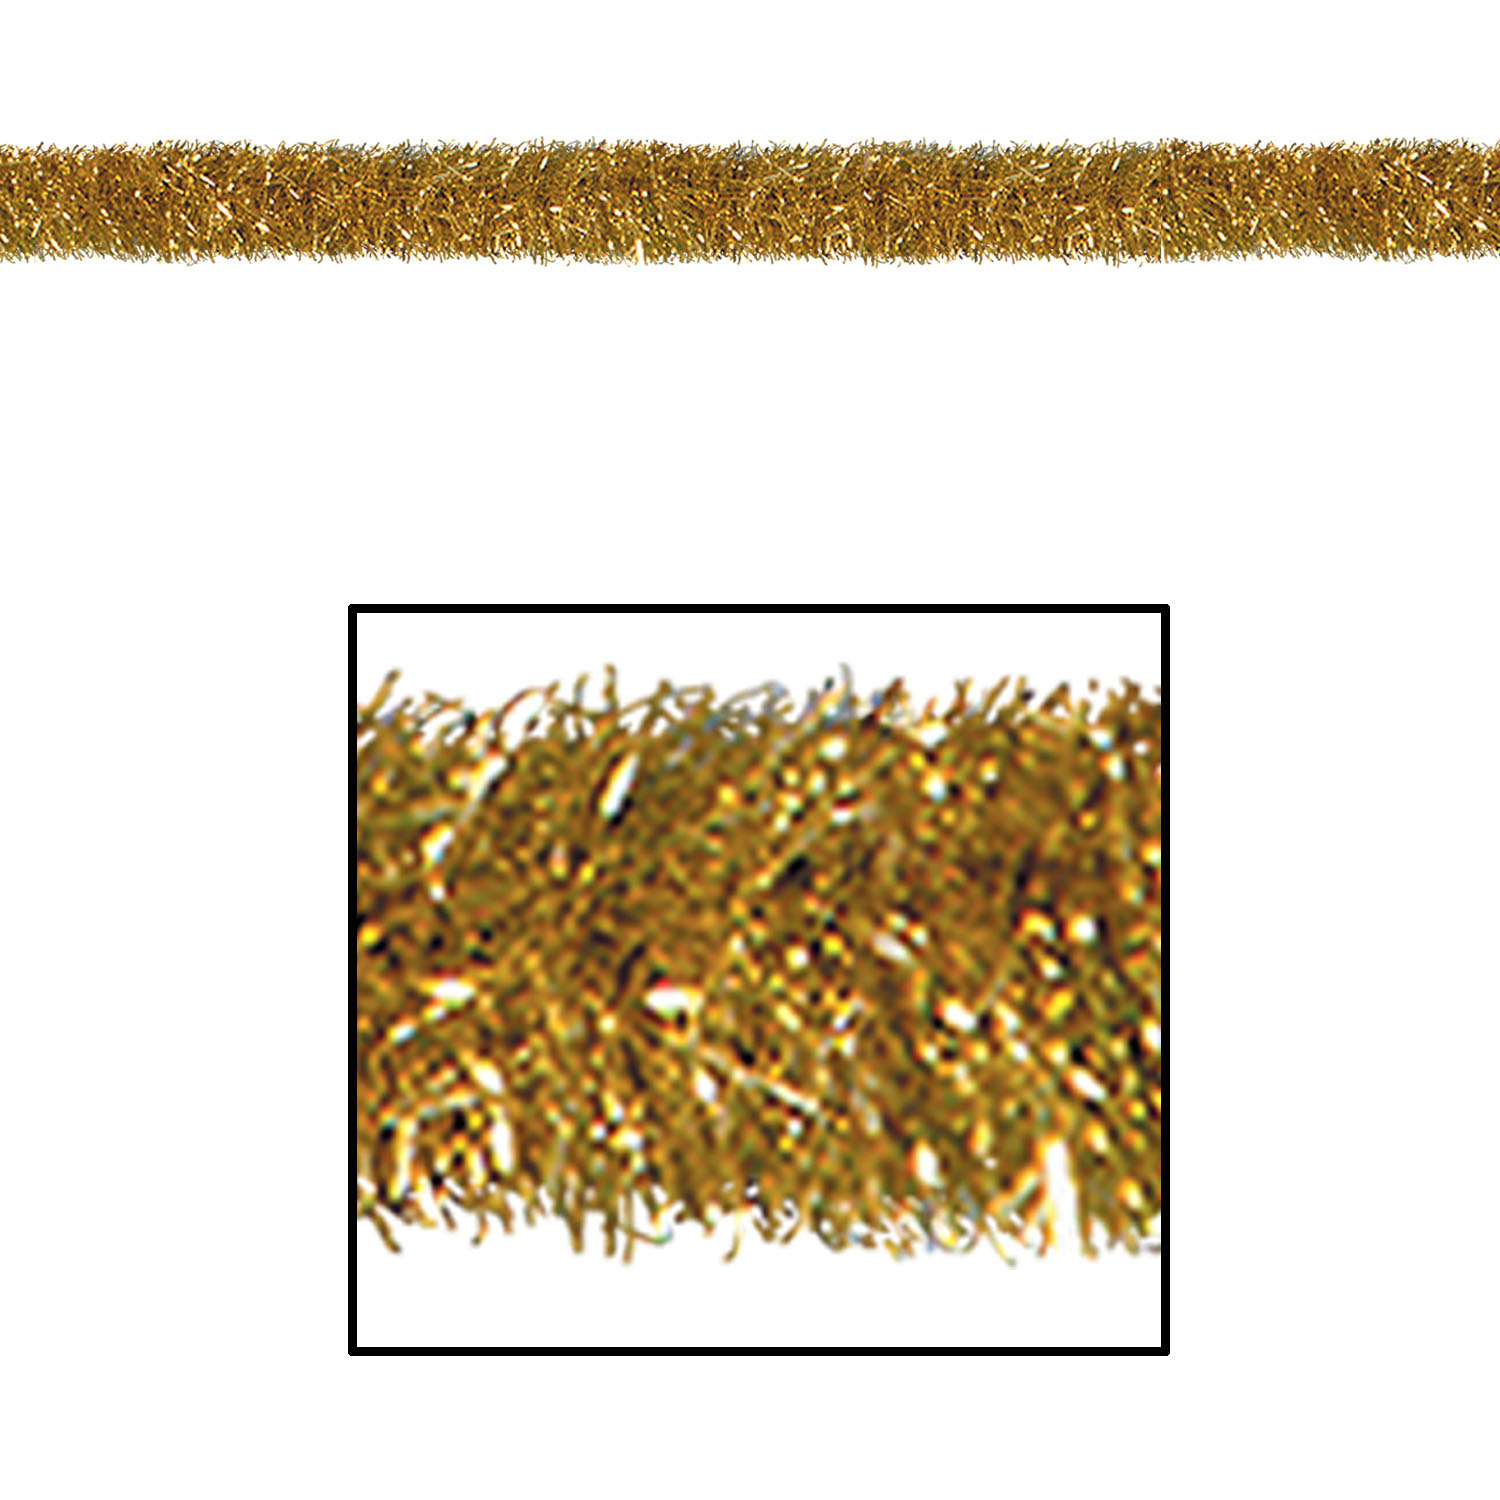 Gold Gleam N Tinsel Garland (Pack of 1) Garland, Tinsel Garland, Gold, Shimmering Decor, Cheap, Party Favors, Party Supplies, Wholesale party goods, Inexpensive, New Years Eve, Awards, Hollywood, Christmas, Hanging Decor